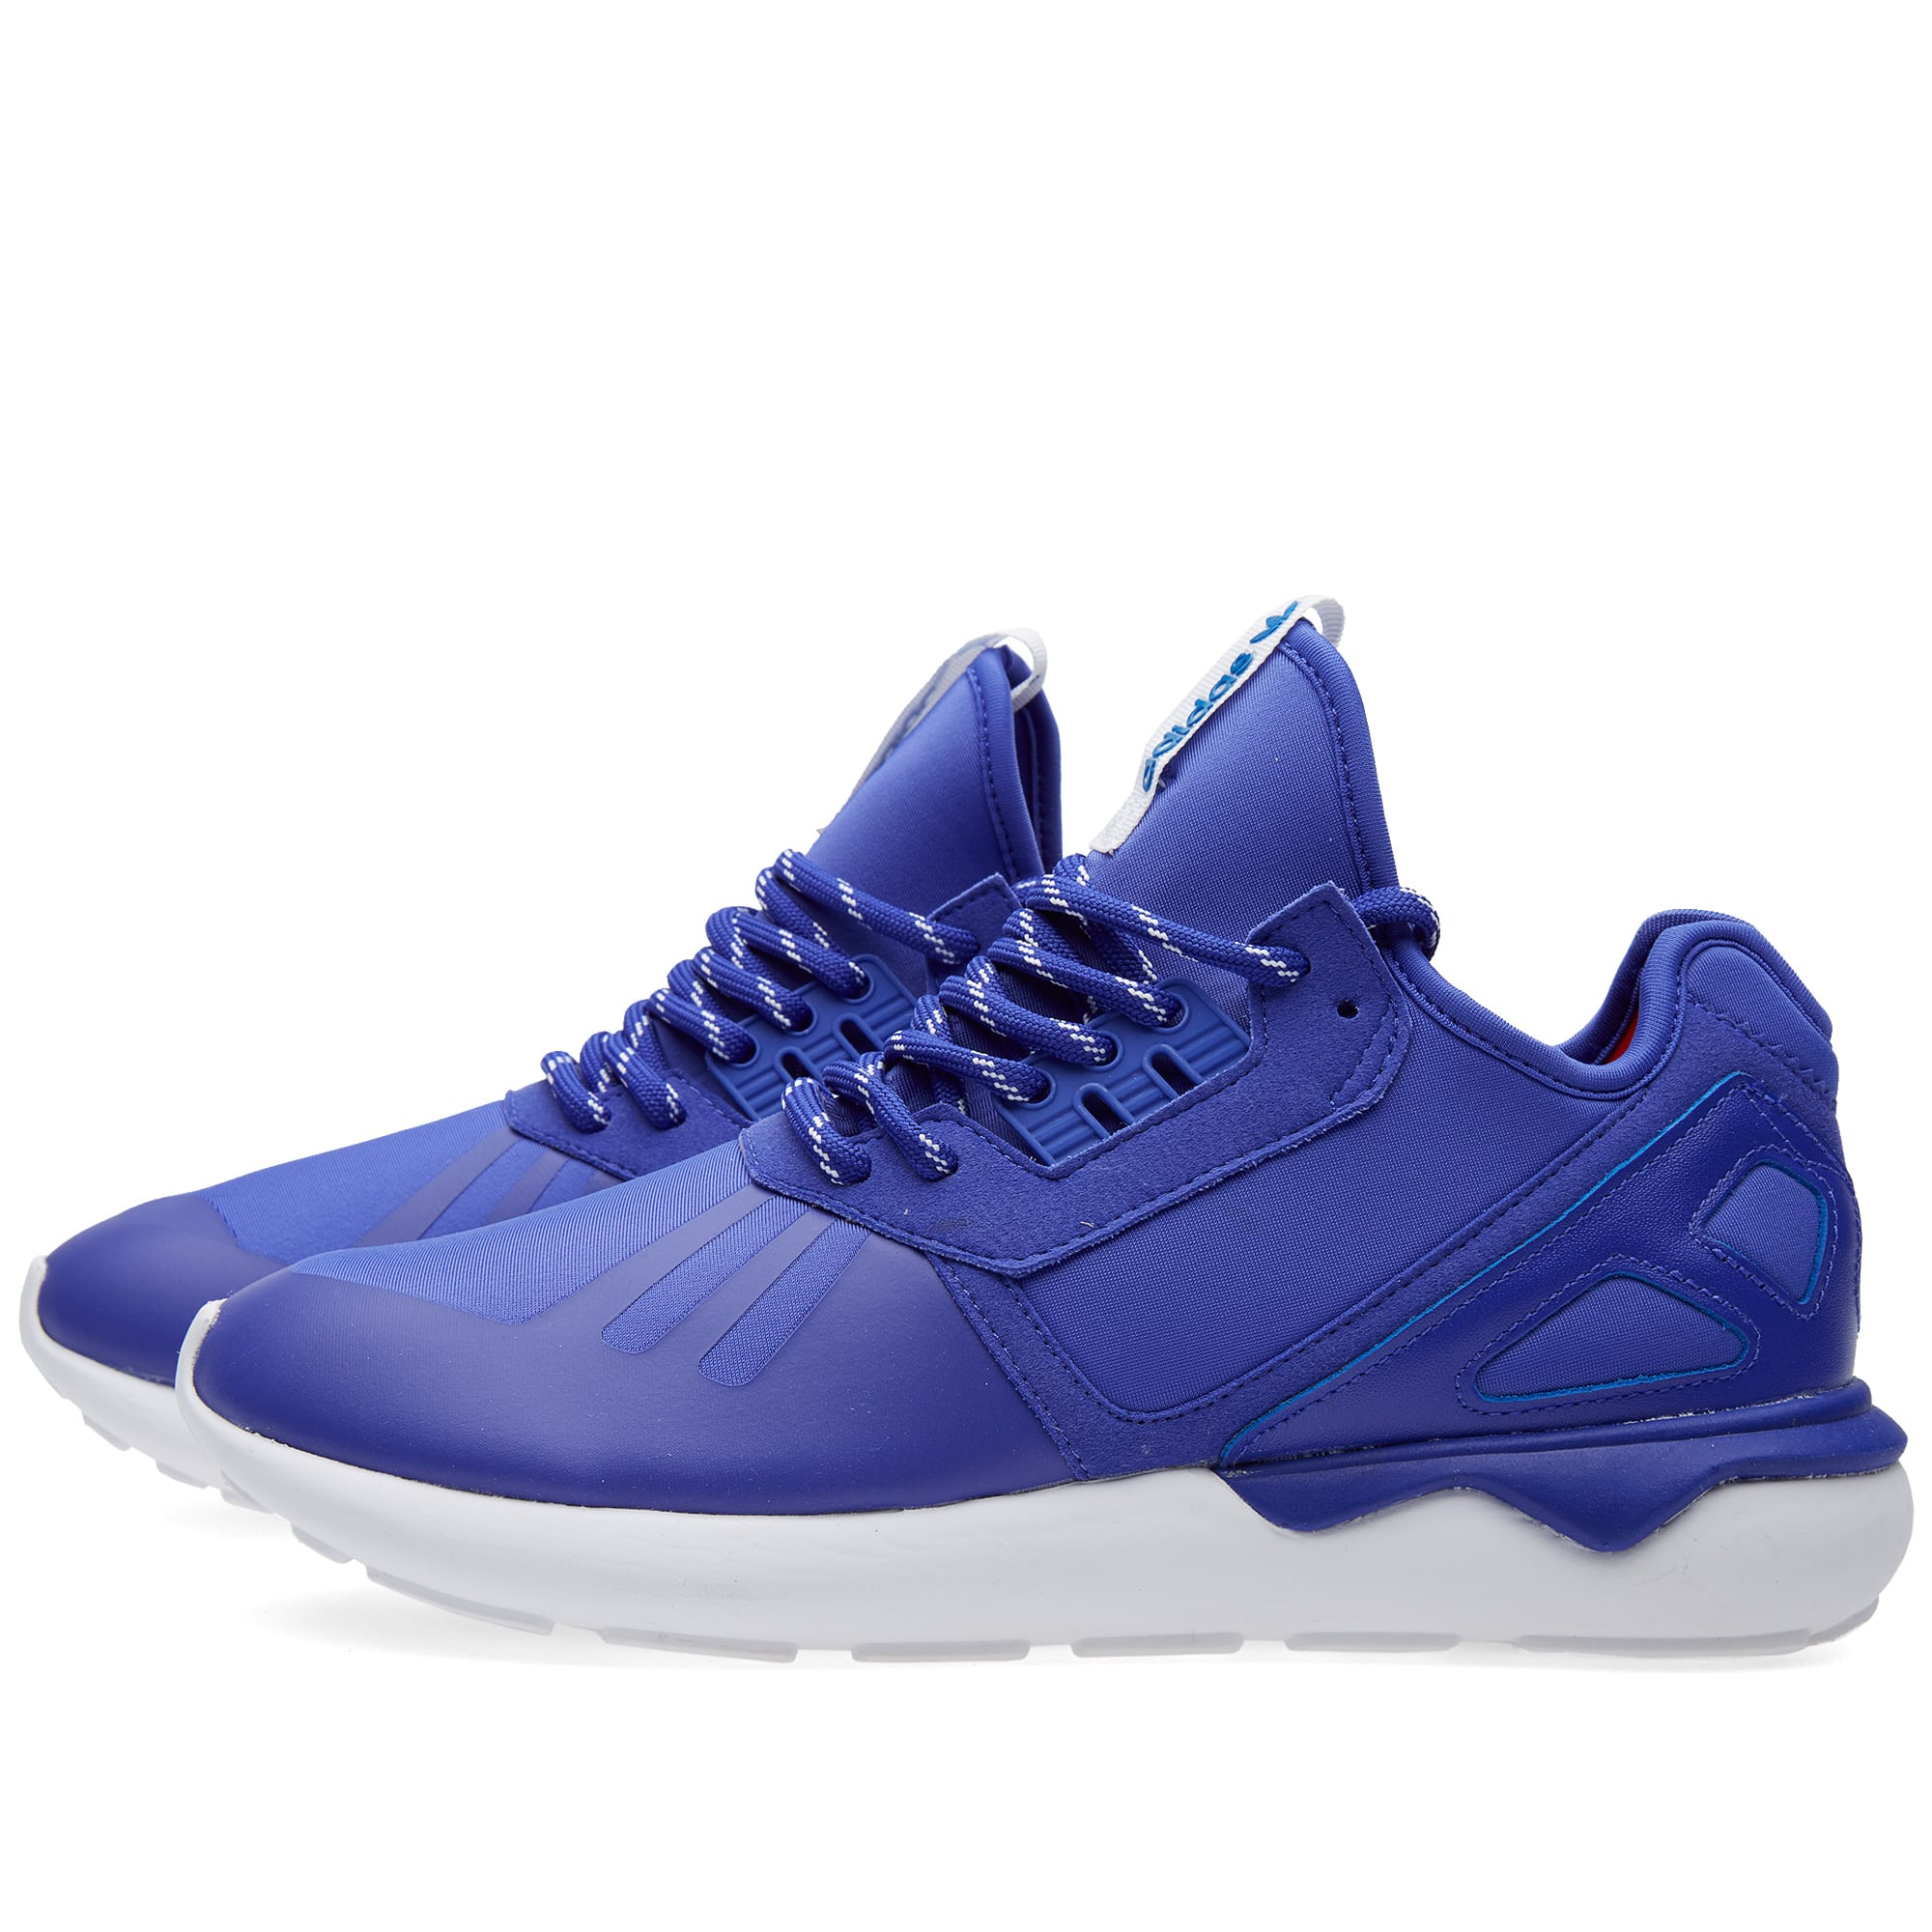 timeless design b4a9a 33a3e Adidas Tubular Runner Night Flash   END.